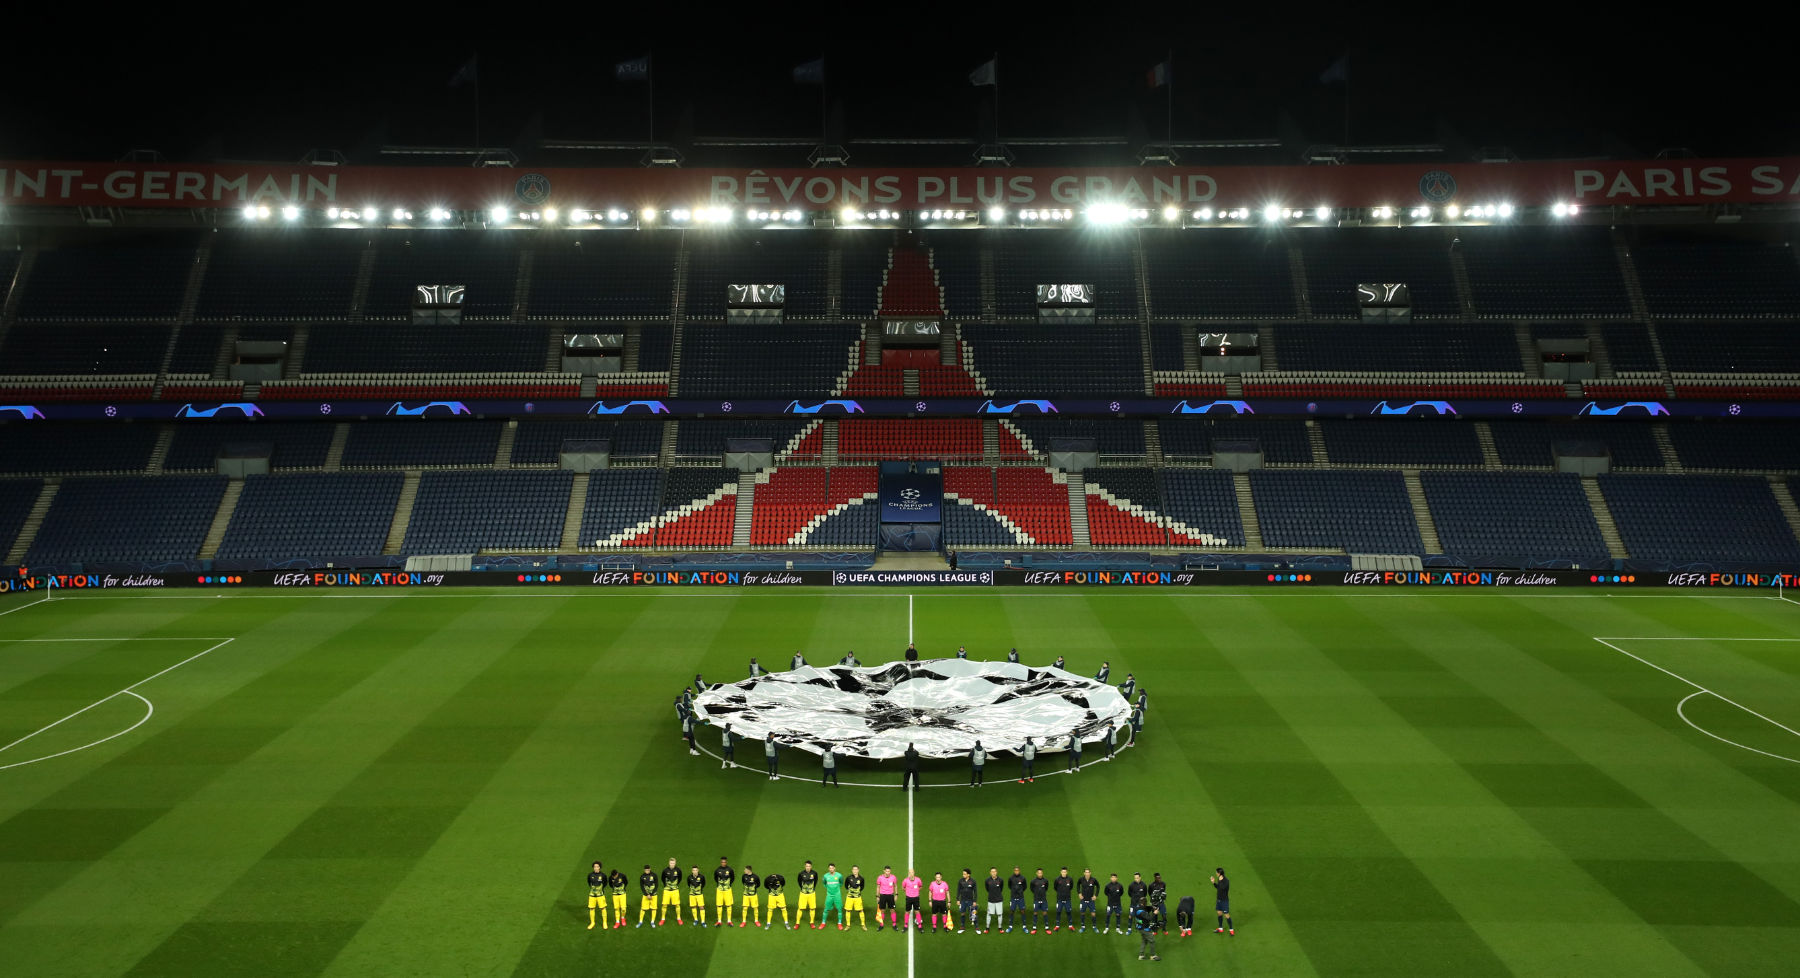 Why Psg Should Be Considered Underdogs To Win The Champions League